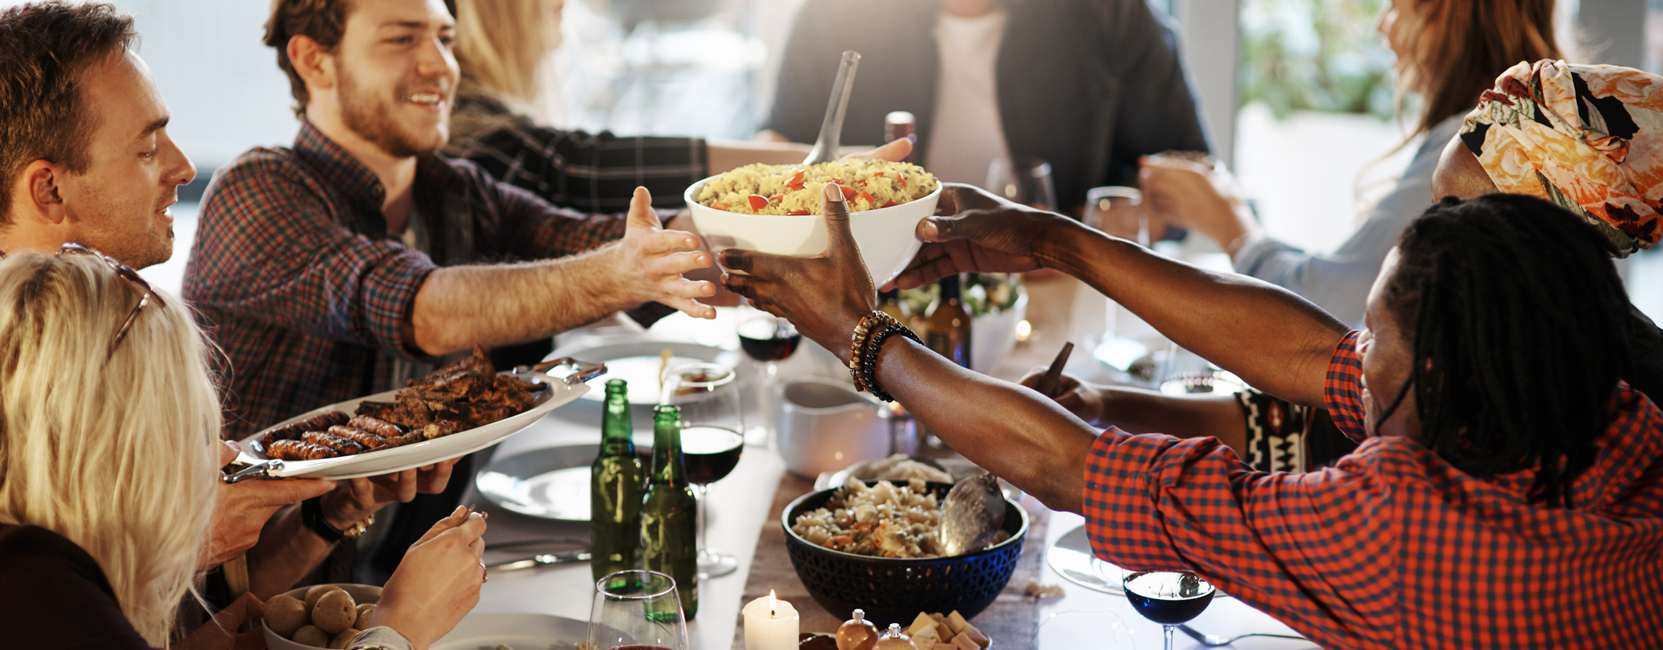 Finding a Seat at the Potluck of American Democracy